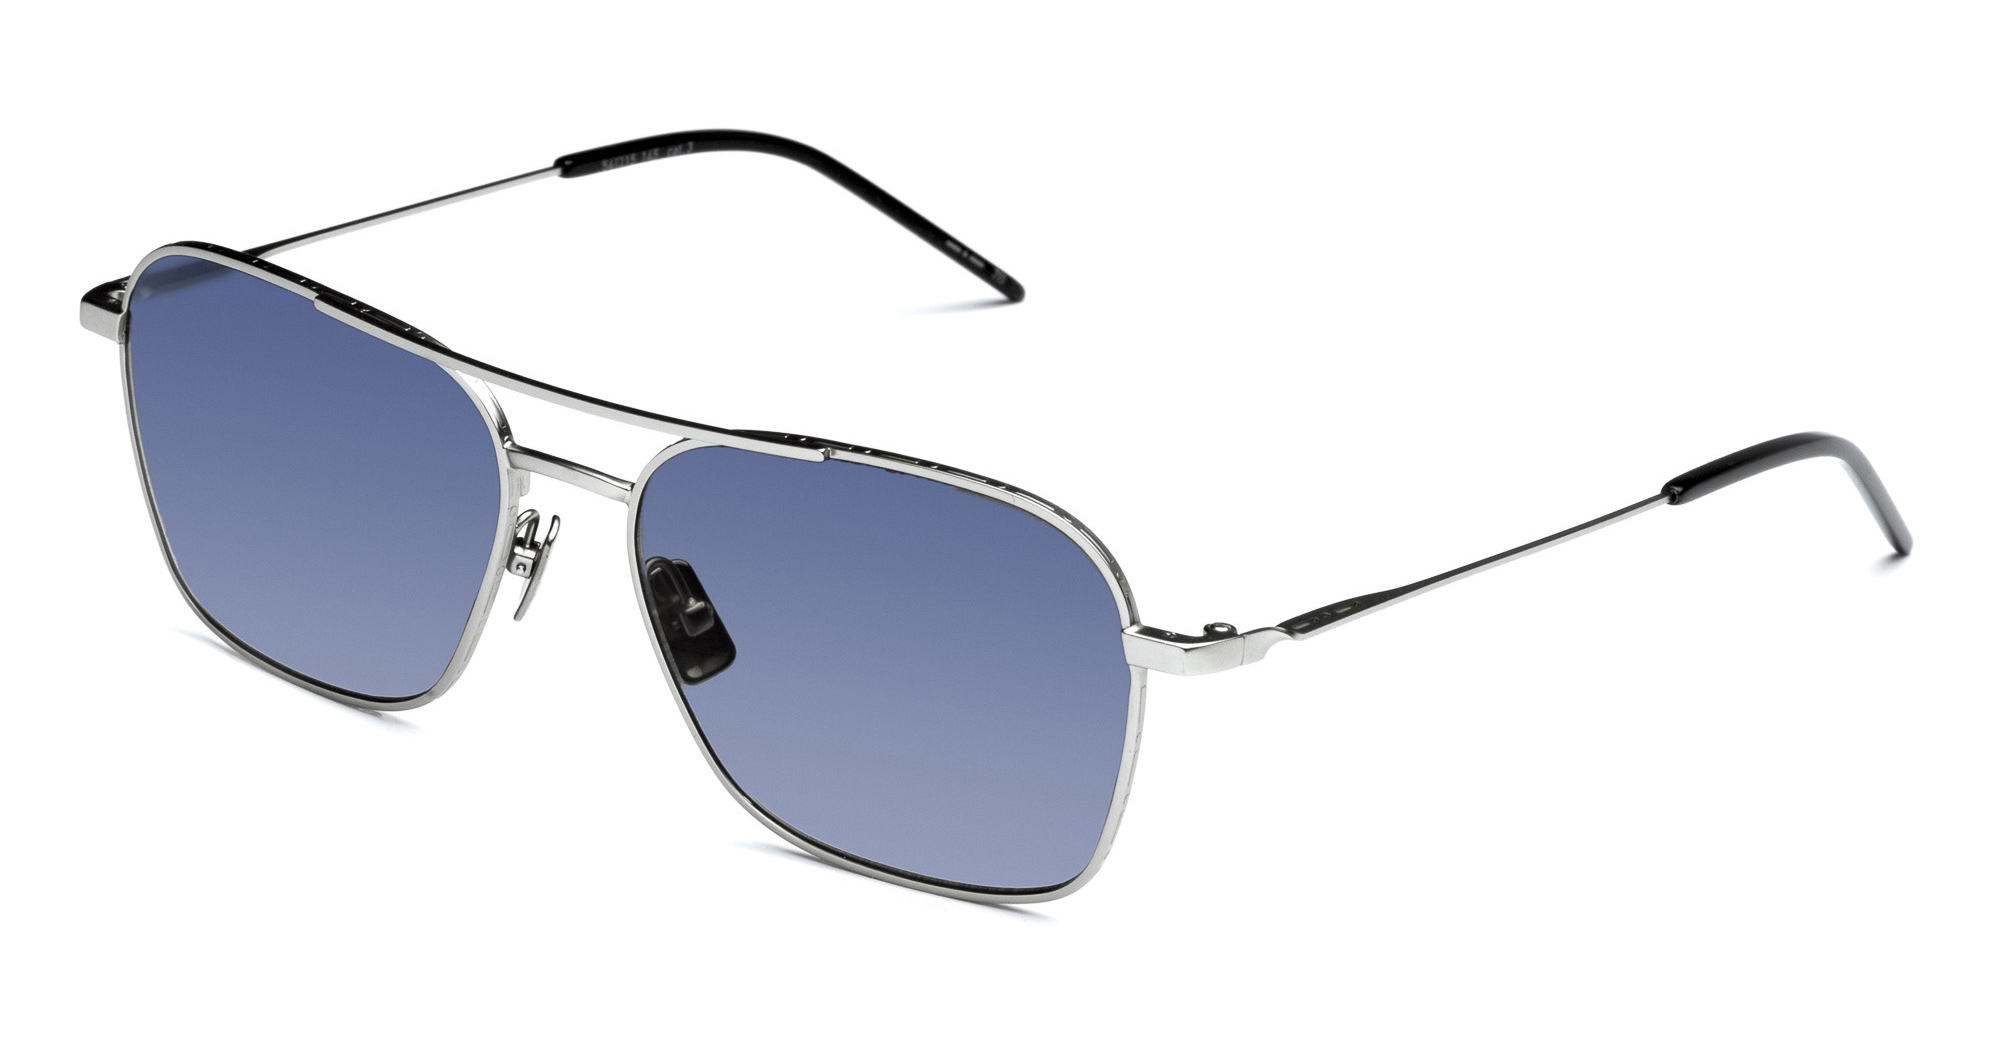 Italia Independent - Occhiale da Sole Uomo, I-I Mod. Igor Laps Collection, Silver/Cosmetic Blue 0308S C50